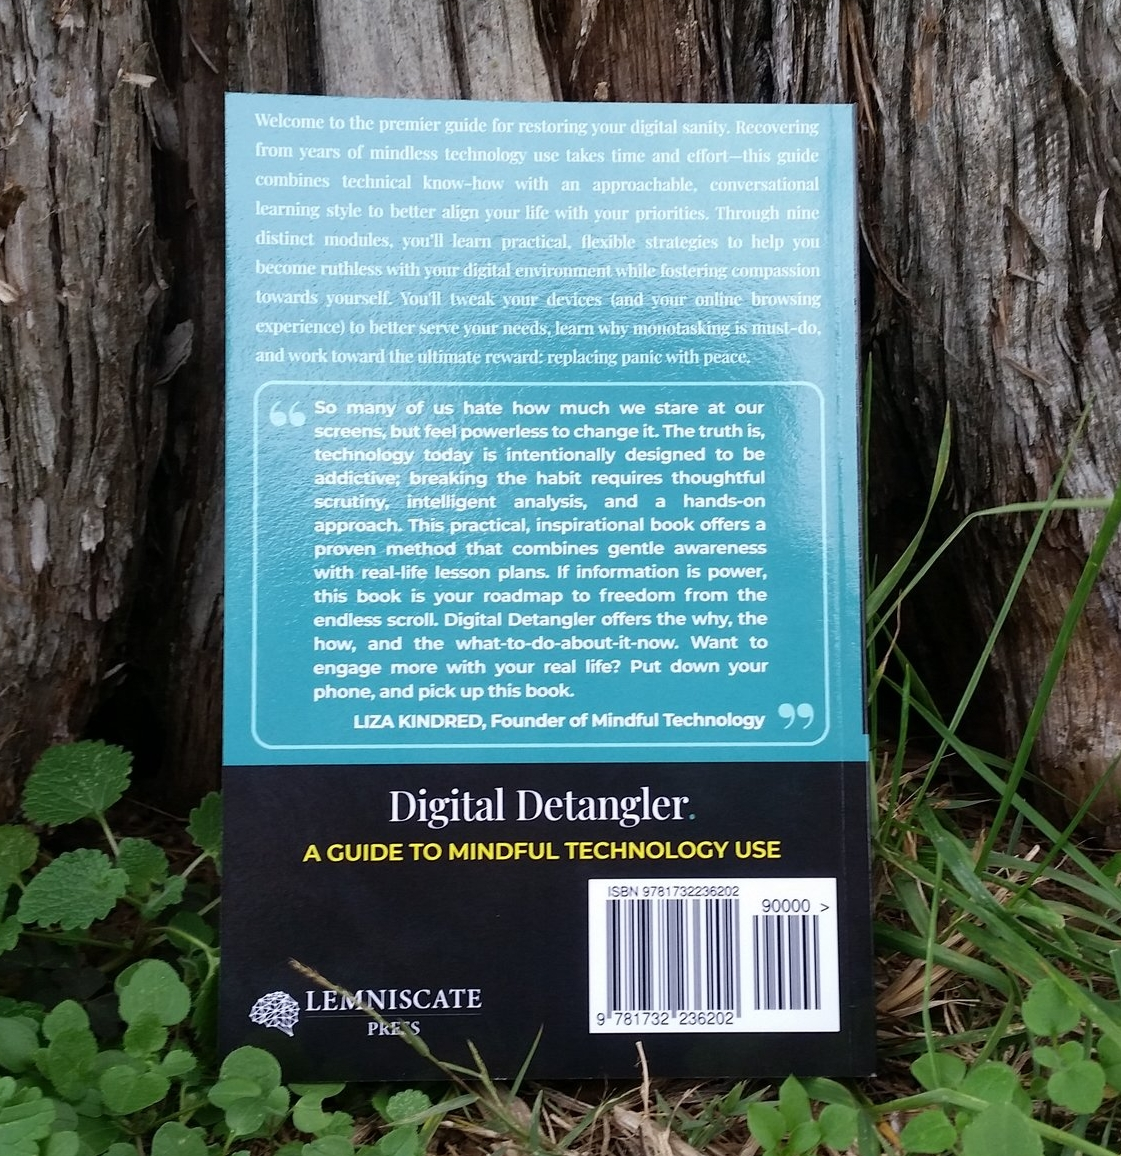 Our founder Liza Kindred loves Pete's book so much that she wrote the blurb!